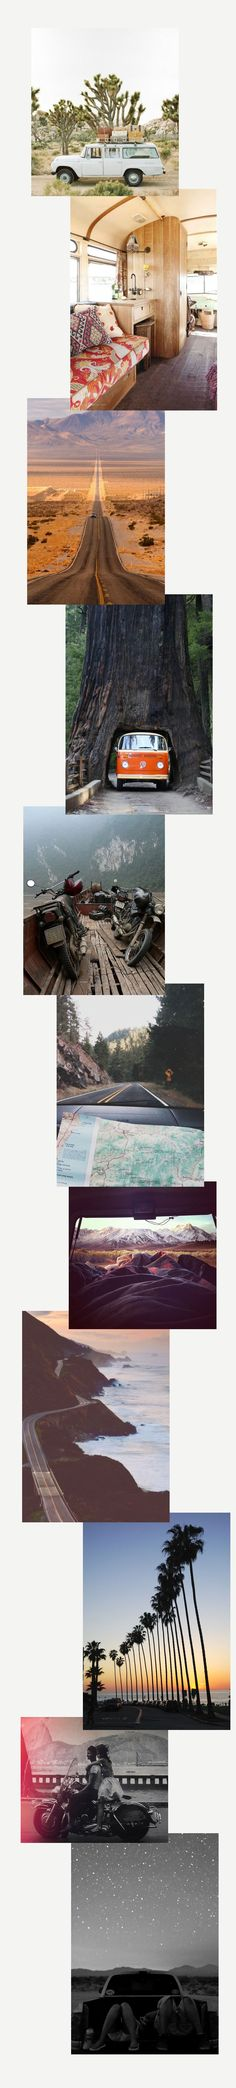 Travel Daydreaming: Road Trip by The Wanderlove Collective Travel Inspiration, Road Trip, Collage, Collages, Road Trips, Collage Art, Colleges